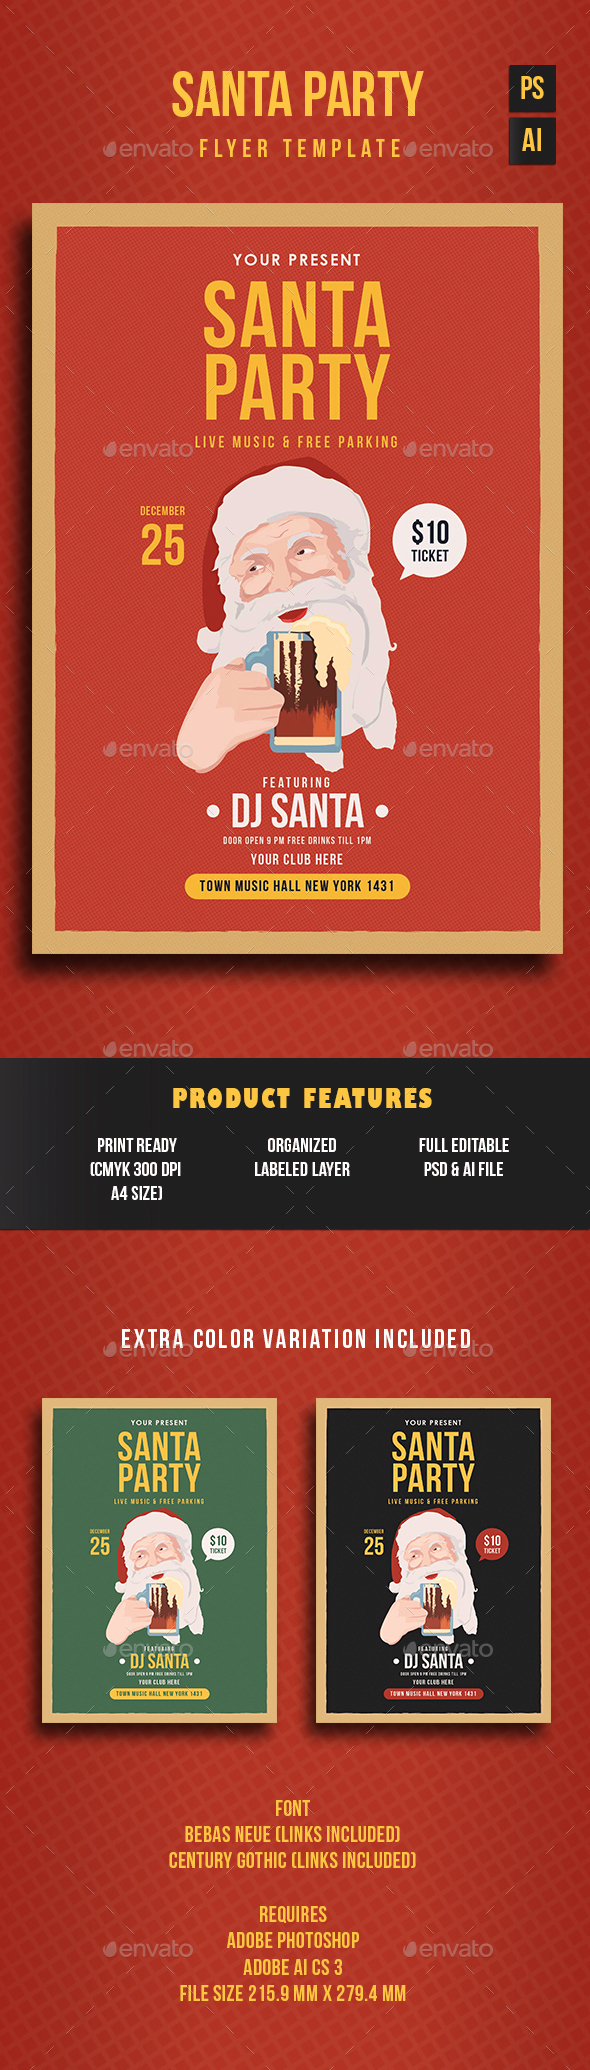 Santa Party Flyer Template - Holidays Events